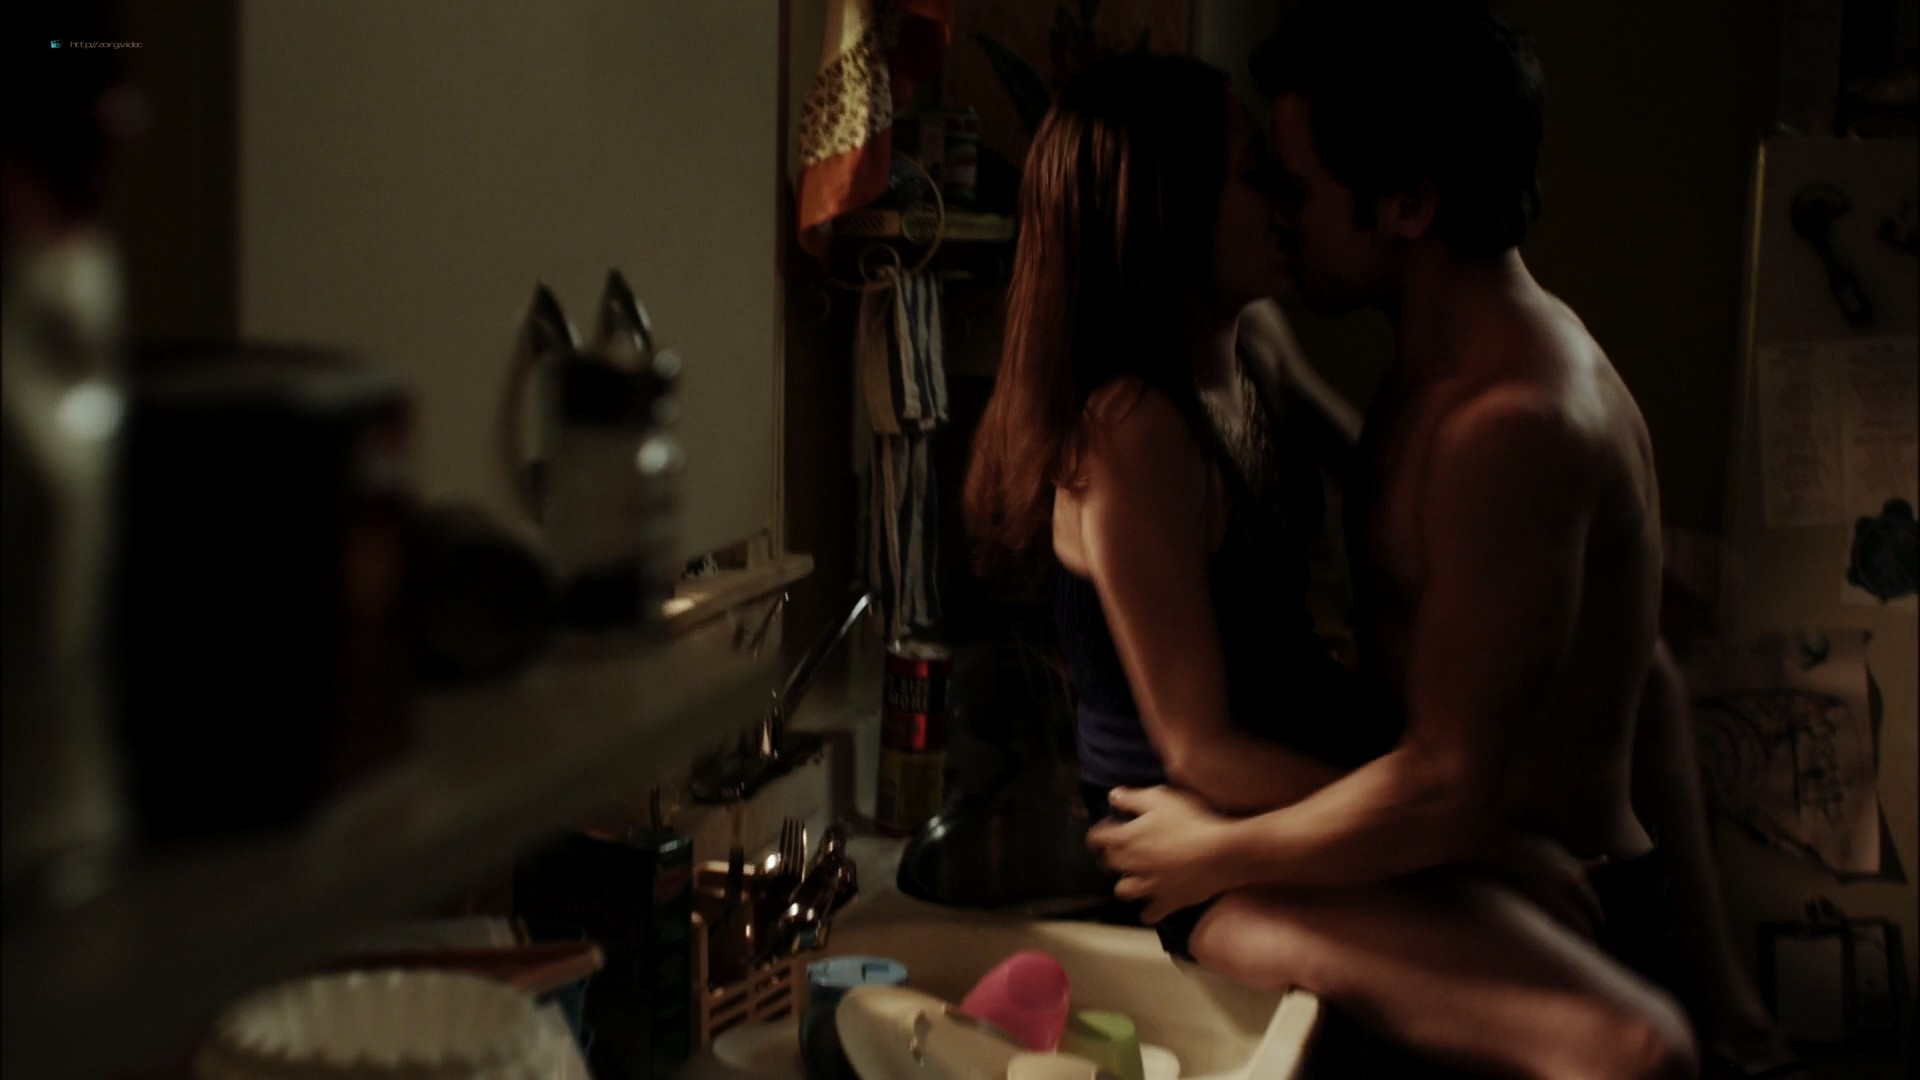 Emmy Rossum nude topless in Shameless (2011) - s1e1 HD 1080p BluRay (11)